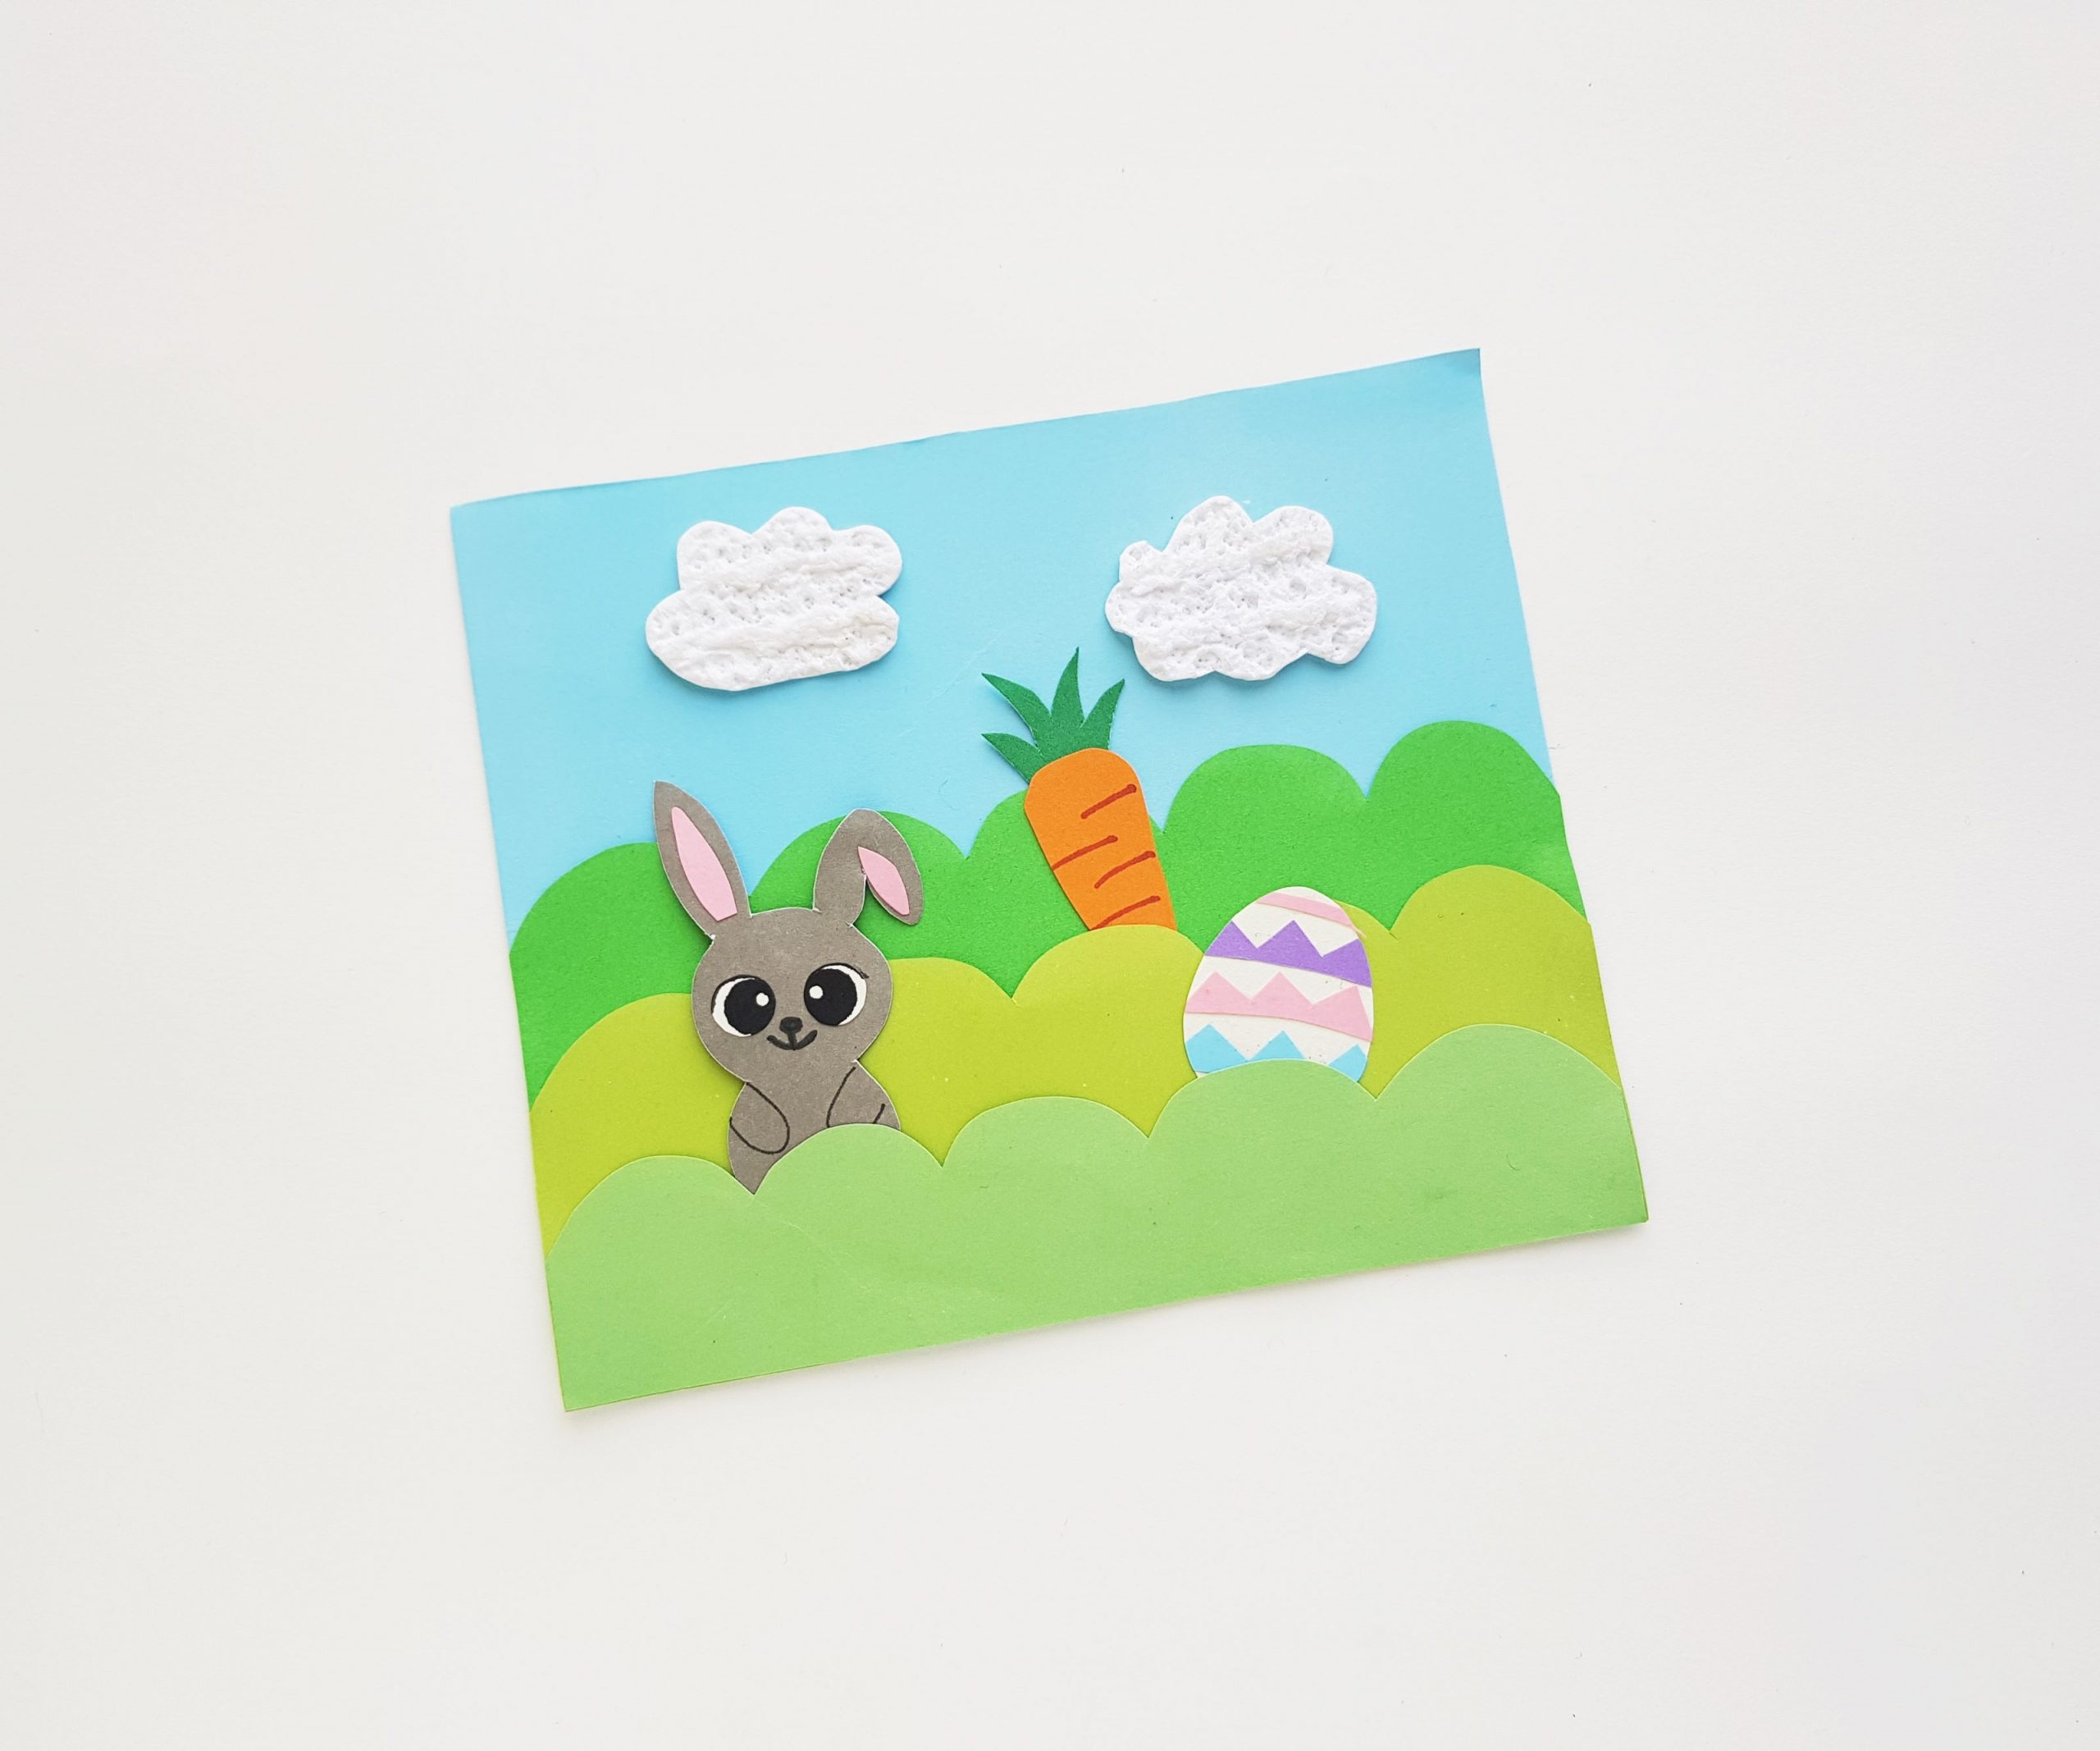 Easter scene craft with bunny, carrots and egg